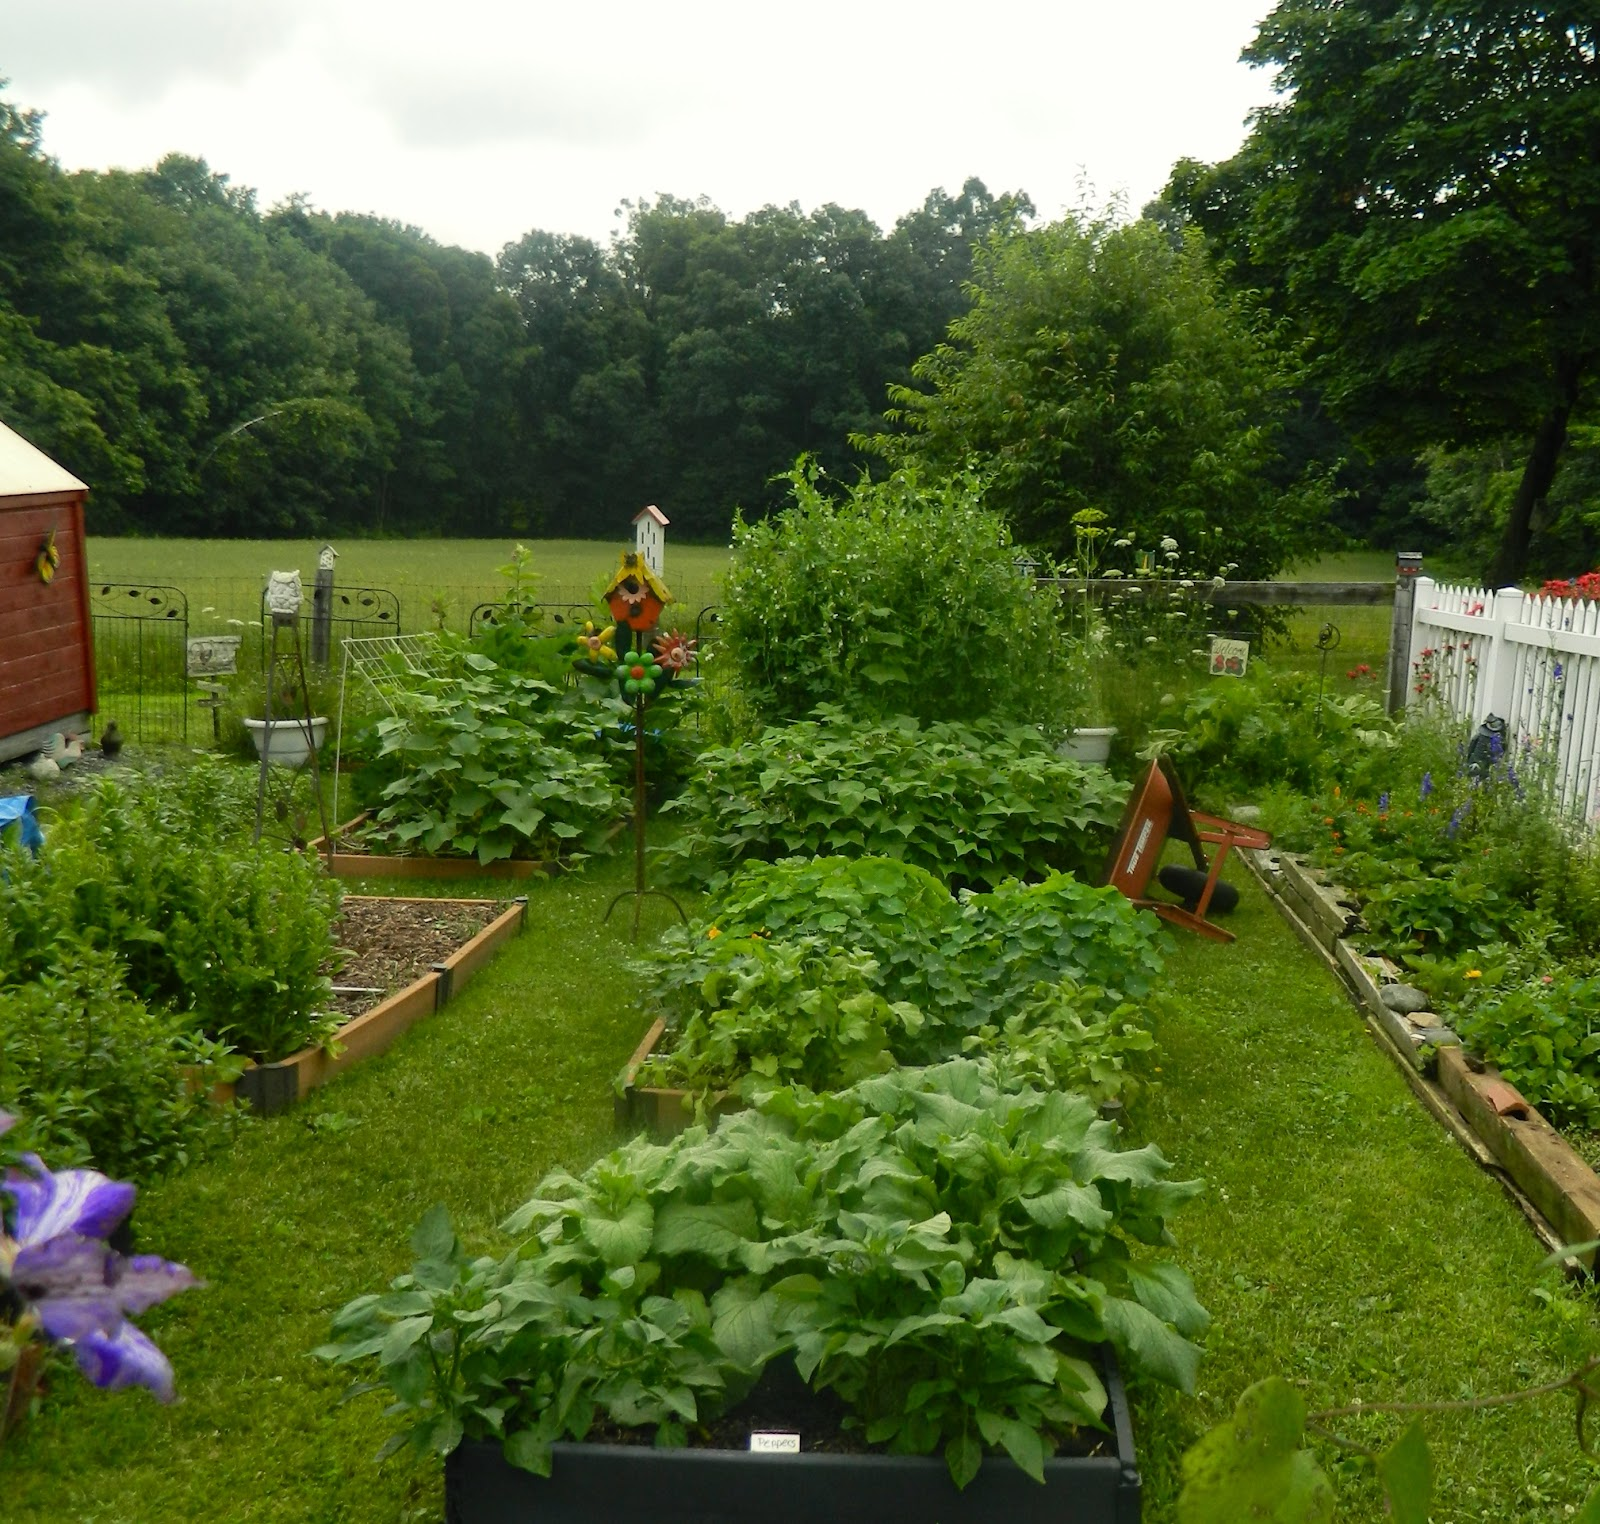 Pam's English Cottage Garden: What's New In My July Garden?